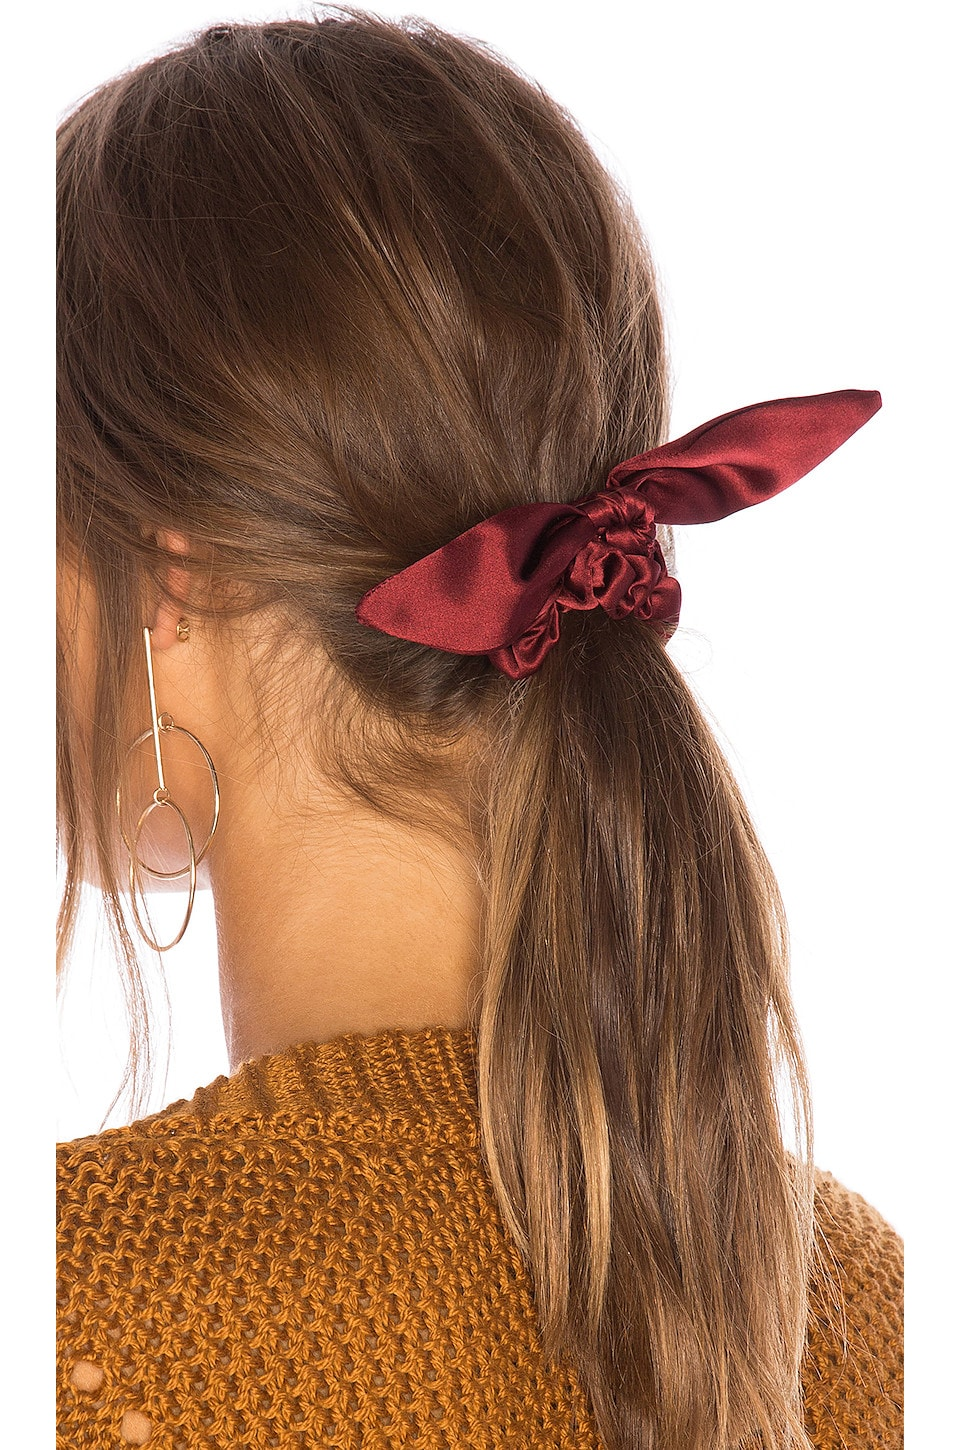 DONNI. Chiquita Silk Scrunchie in Burgundy